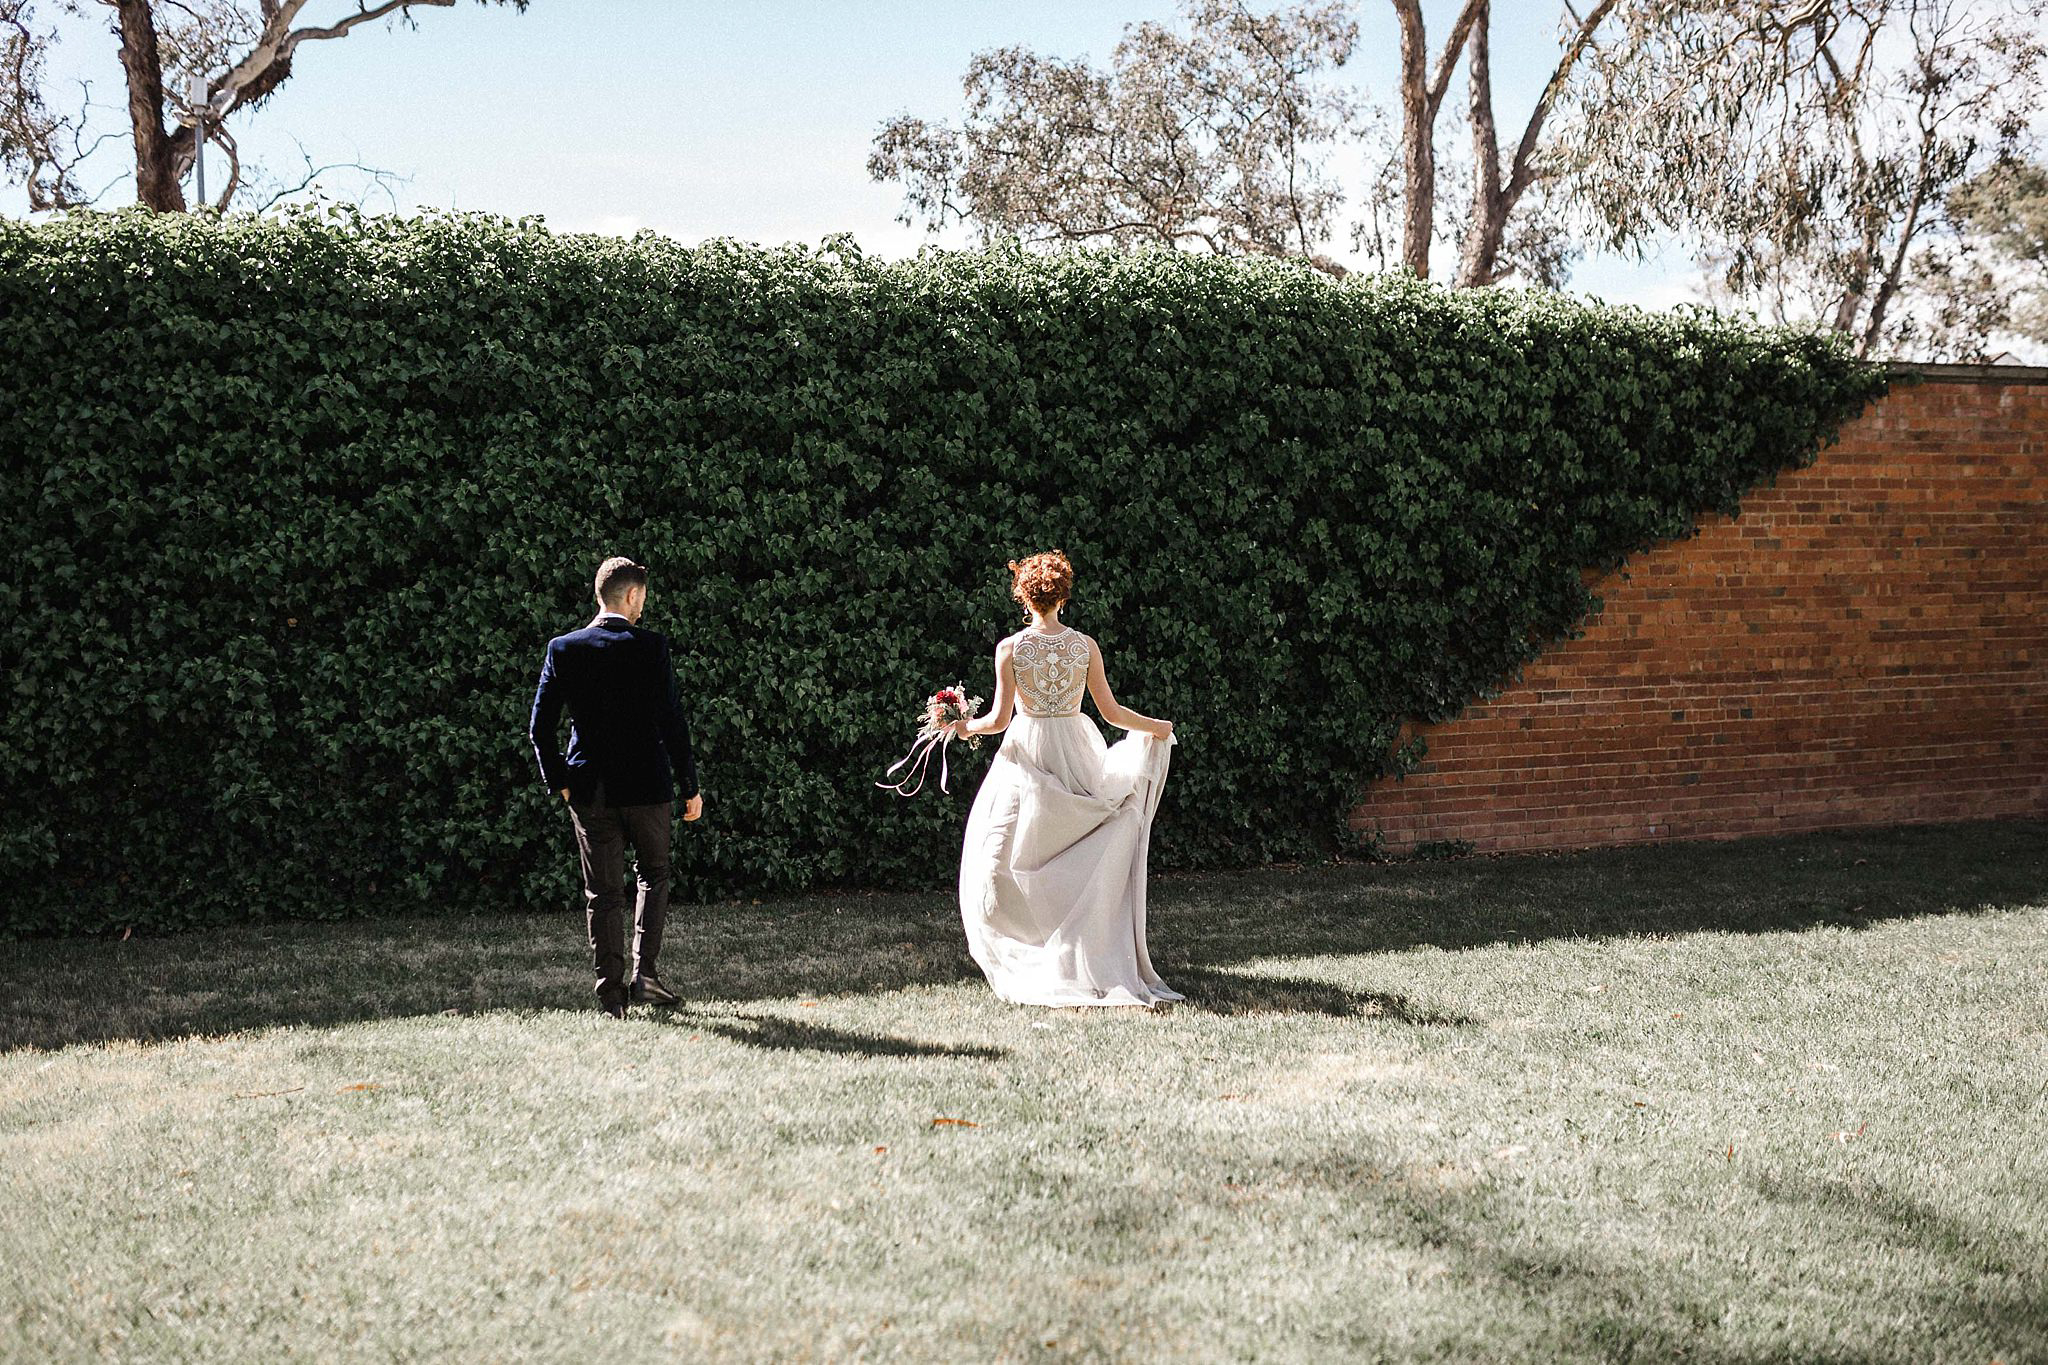 canberra weddings guide